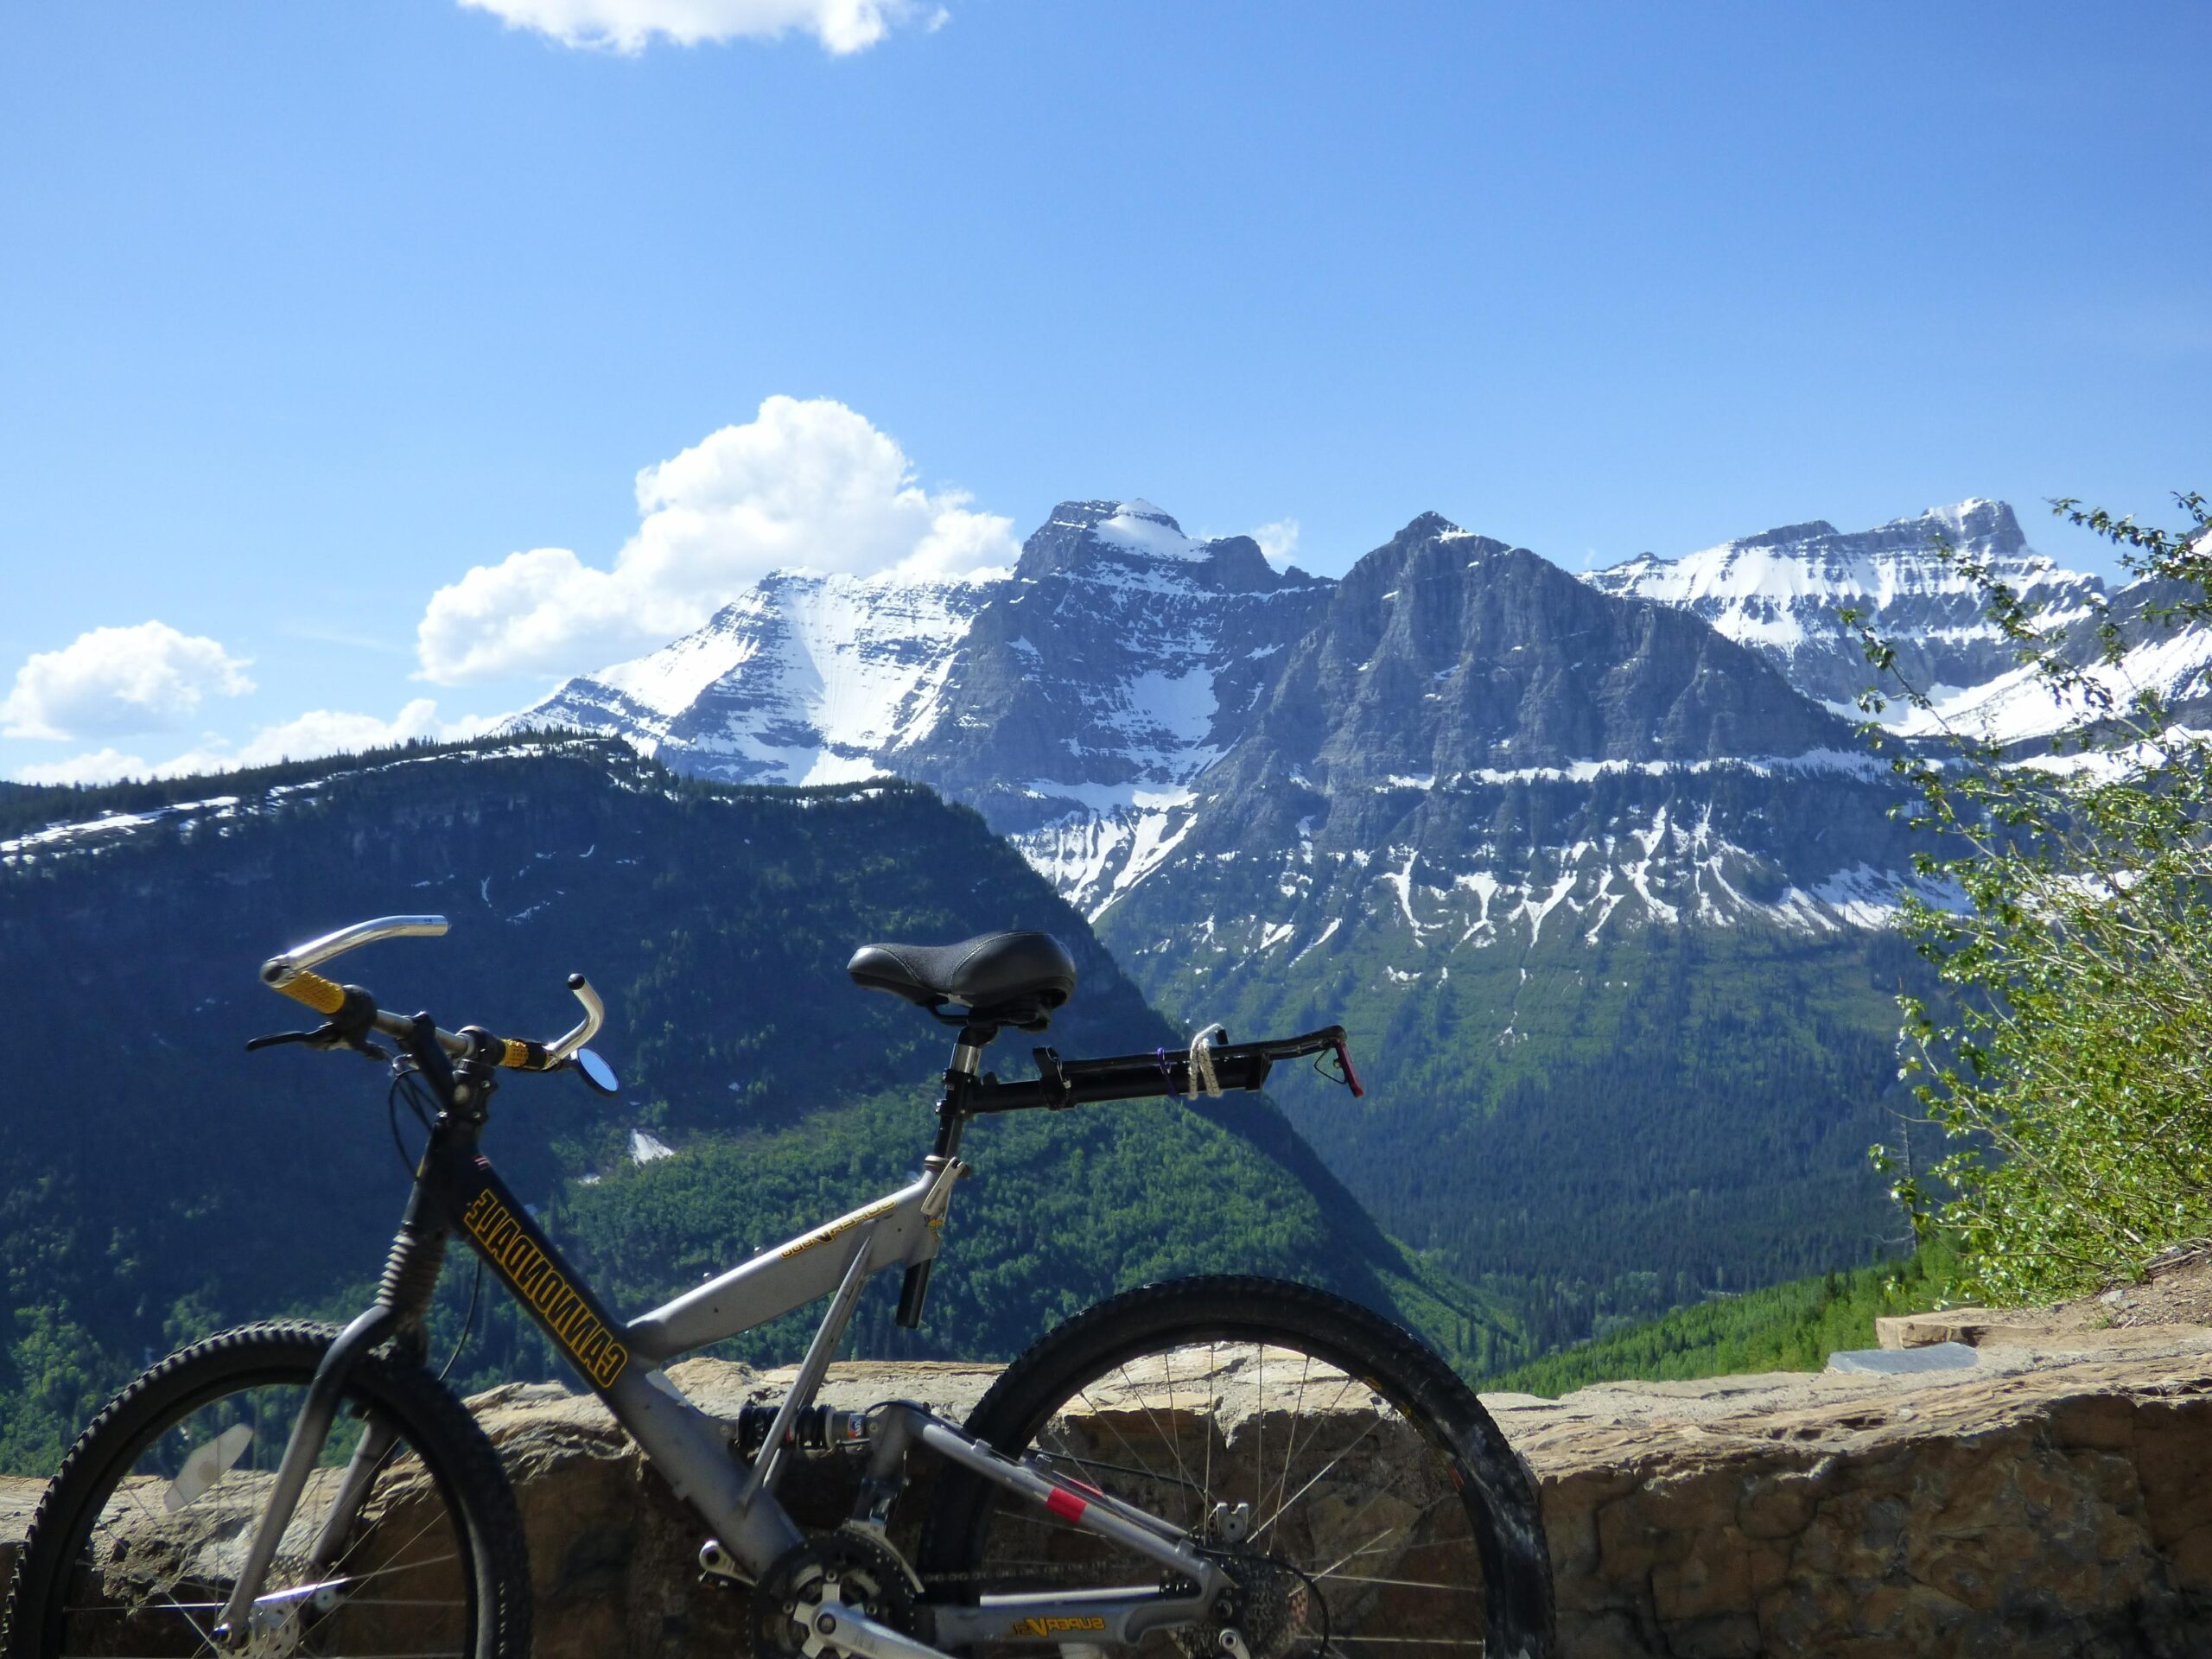 Bike parked beside Going-to-the-sun road with mountain in background